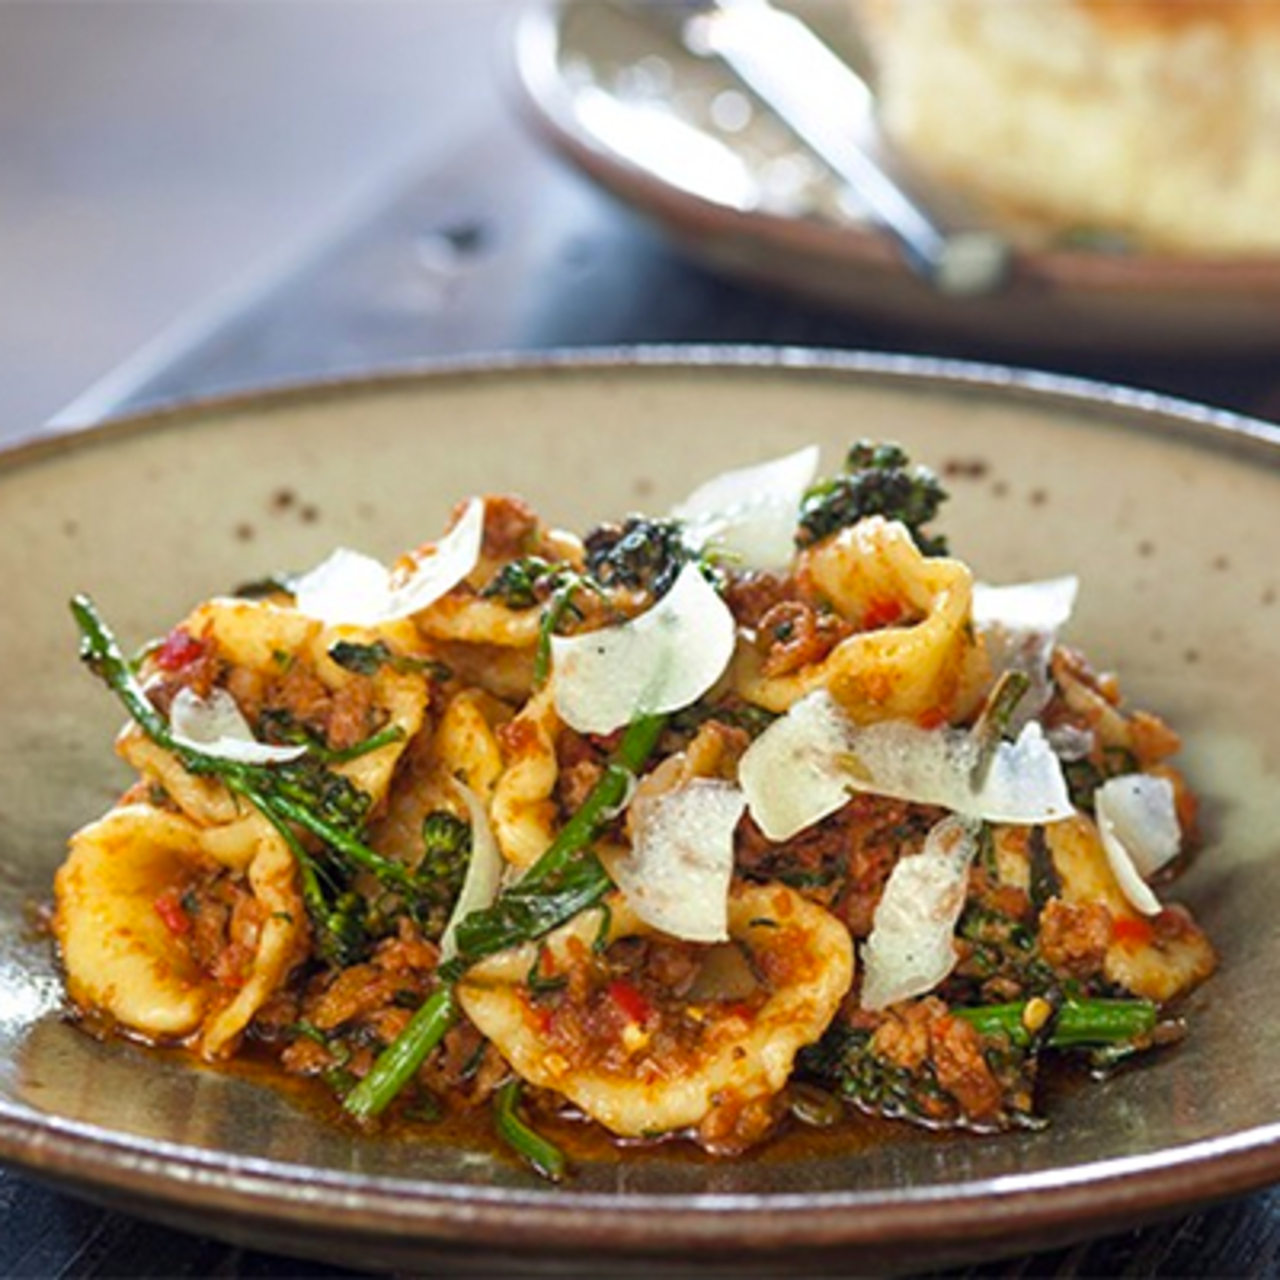 Restaurant Review: Pasta Perfection in Venice